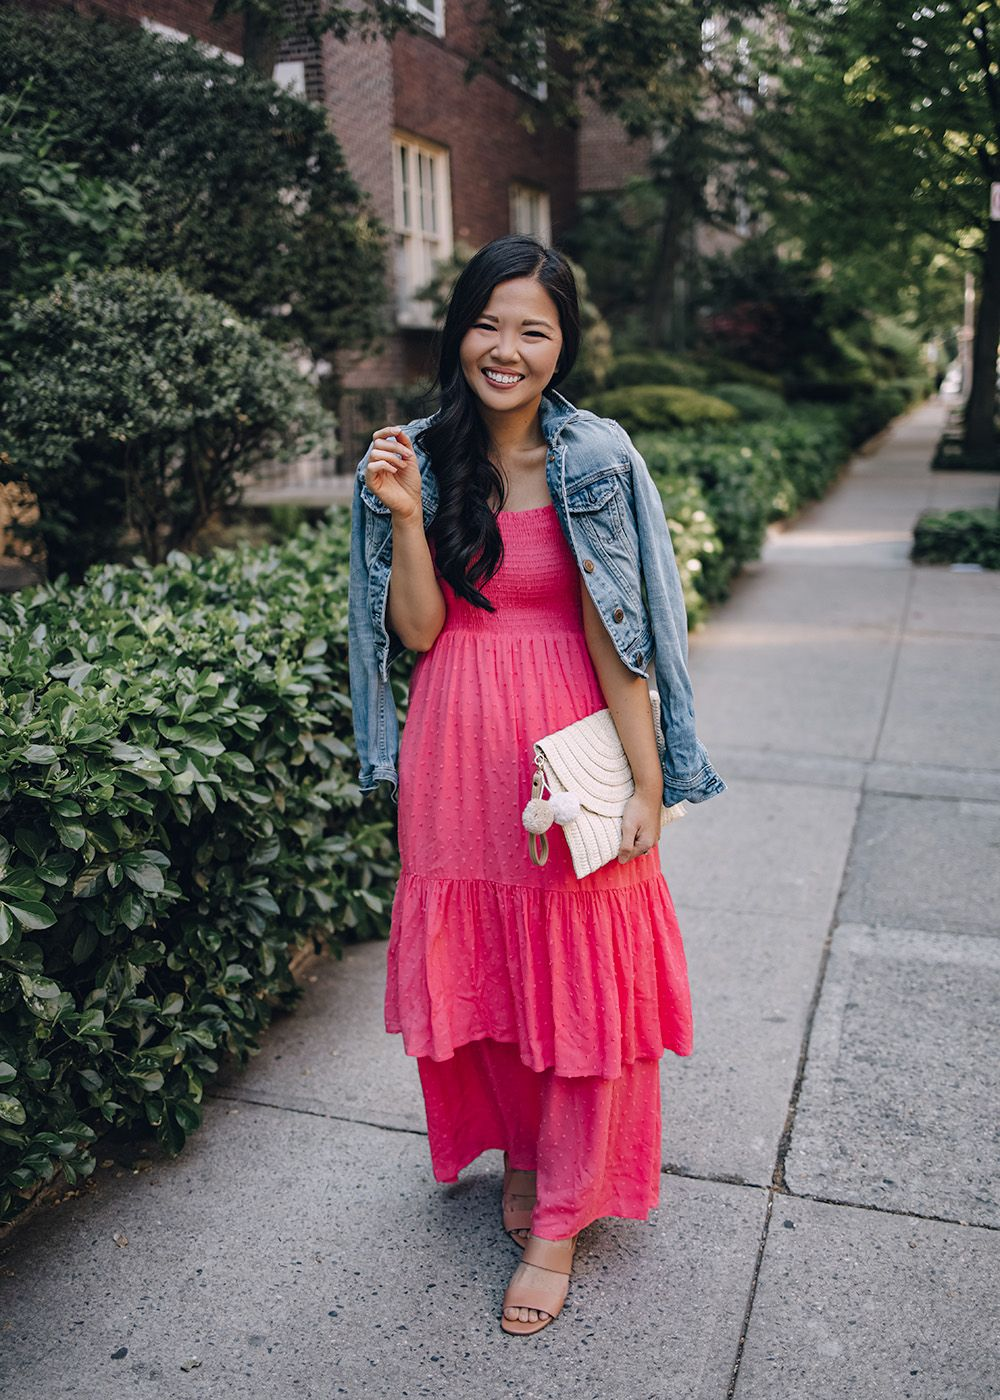 Summer Outfit For Women Denim Jacket Pink Maxi Dress With Ruffles Bright Pink Maxi Dress Summer Maxi Dress Bright Outfits [ 1400 x 1000 Pixel ]